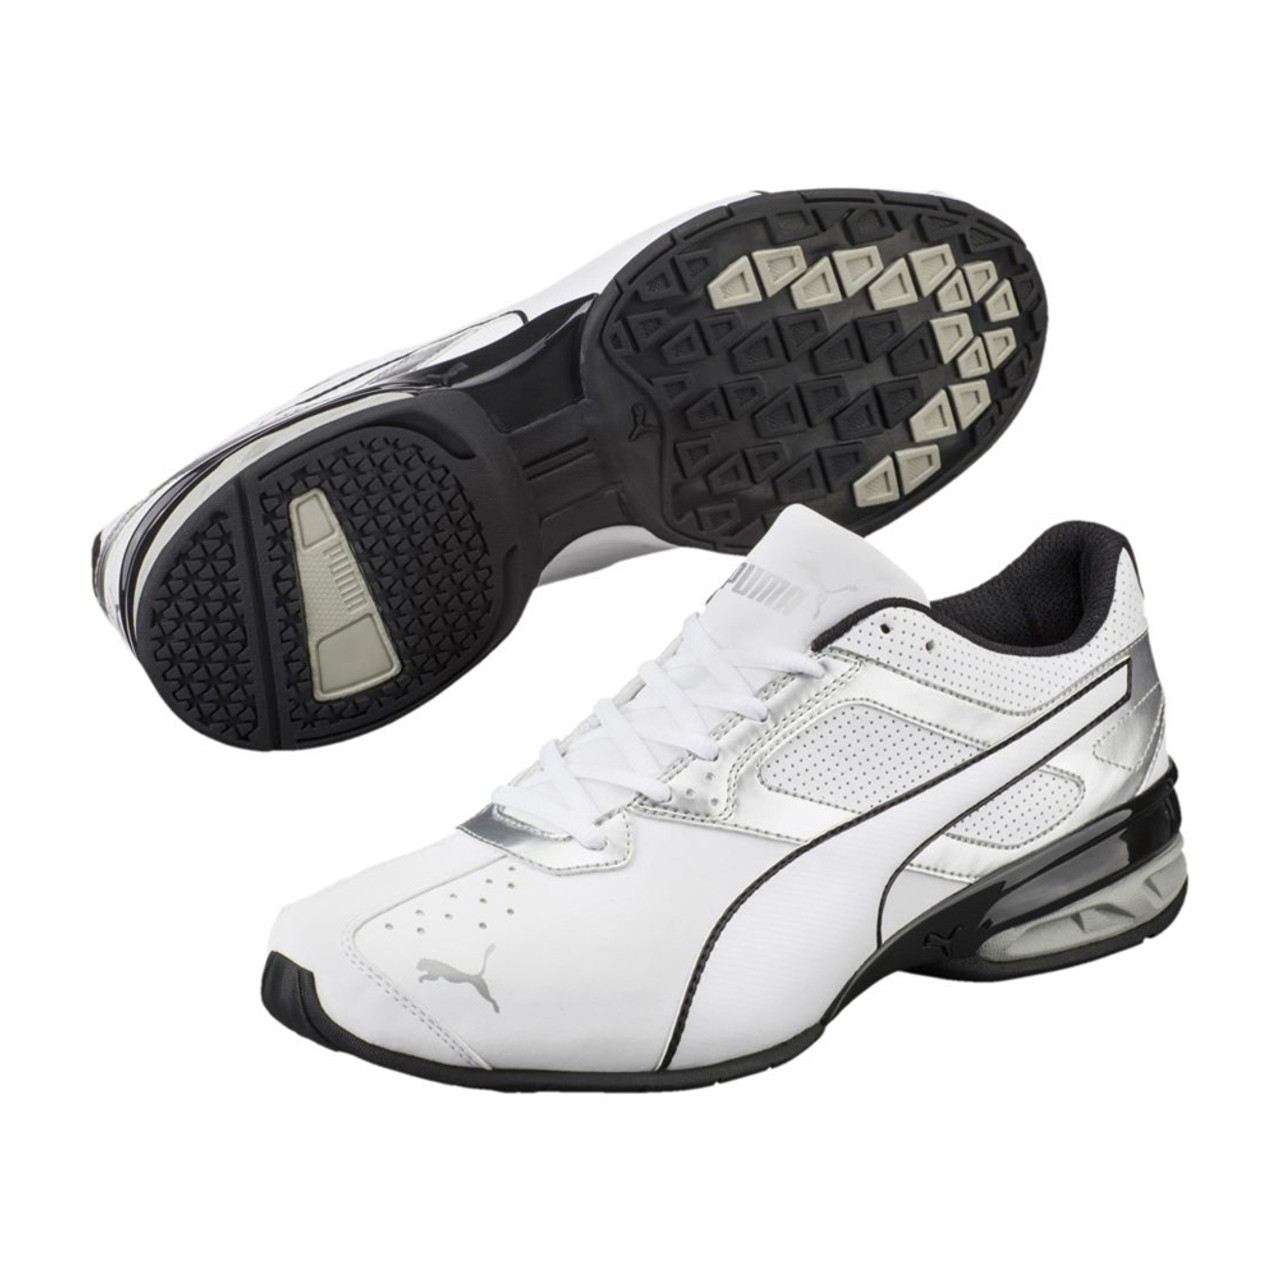 f687178dea8 Puma Men s Tazon 6 FM Running Shoe White Silver Black - Shop now